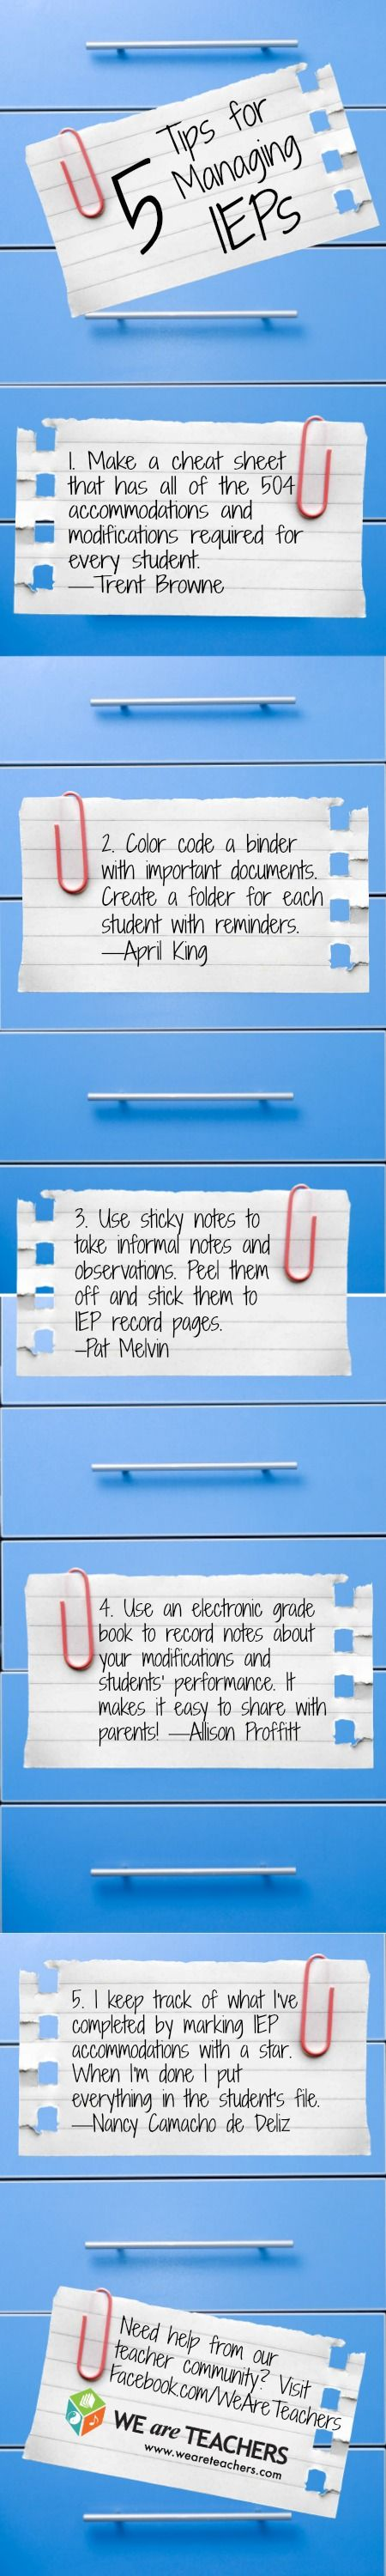 5 Tips for Managing IEPs